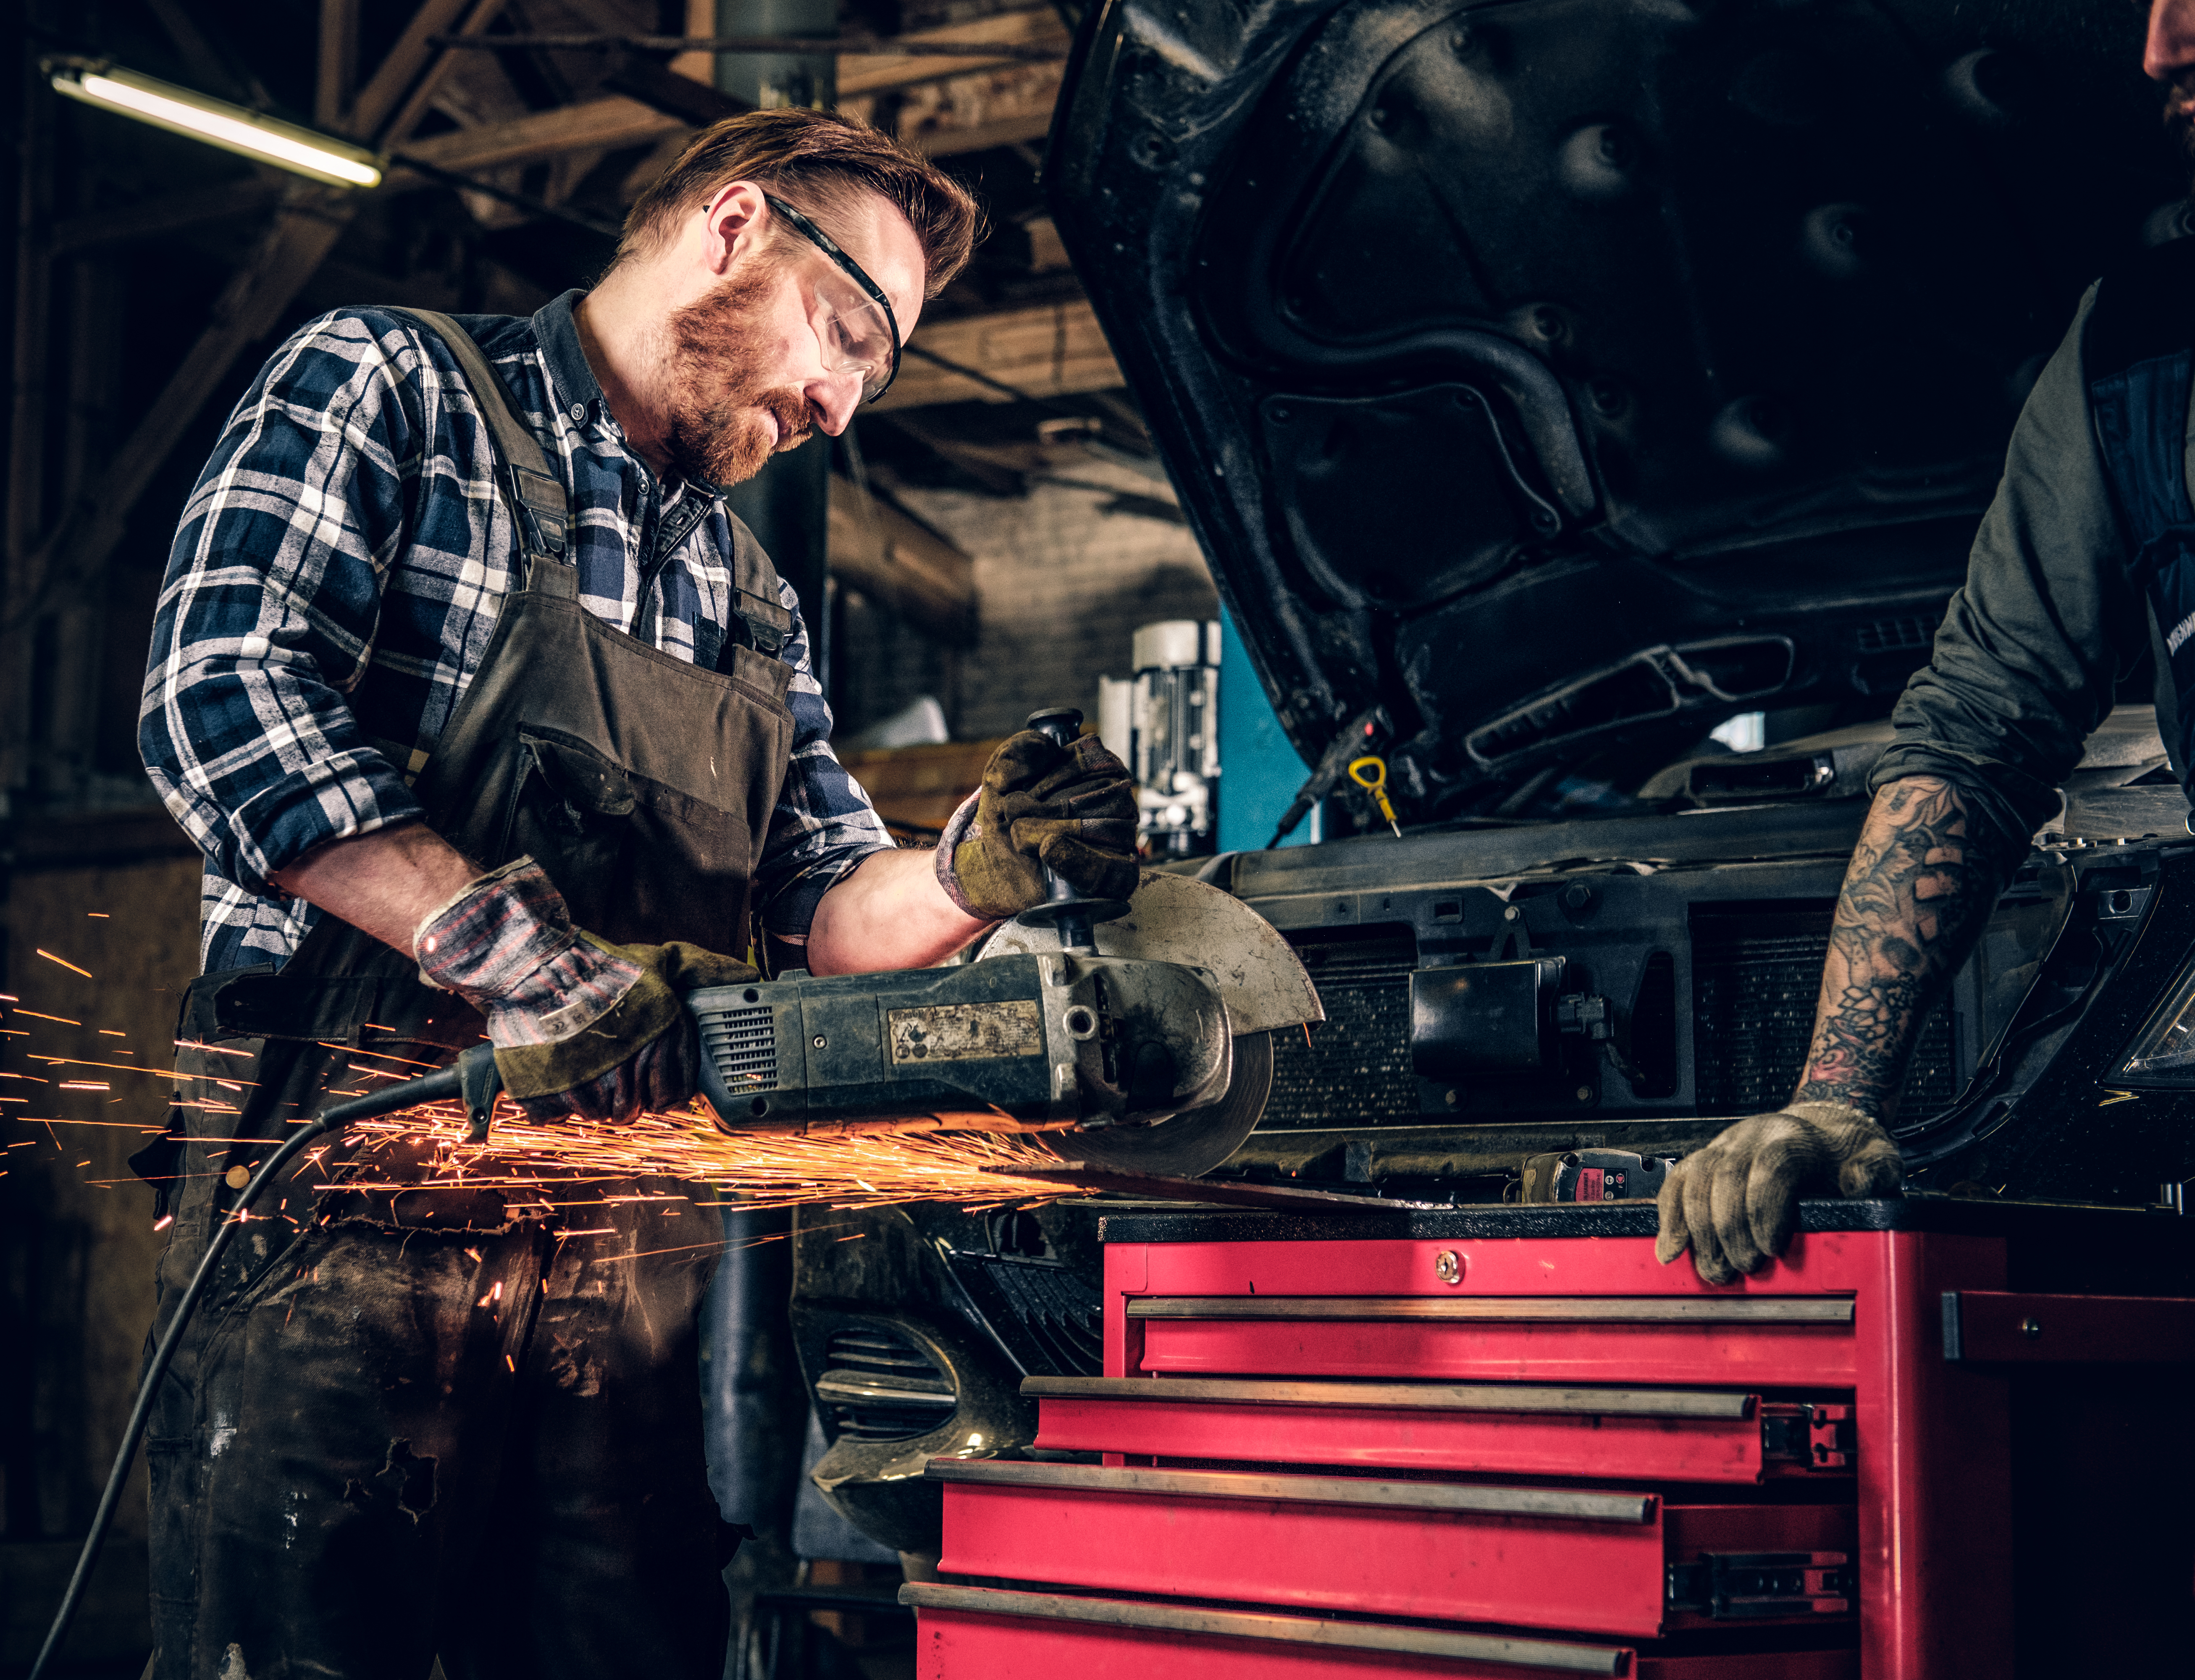 Bearded mechanic cuts steel car part with an angle grinder in a garage.